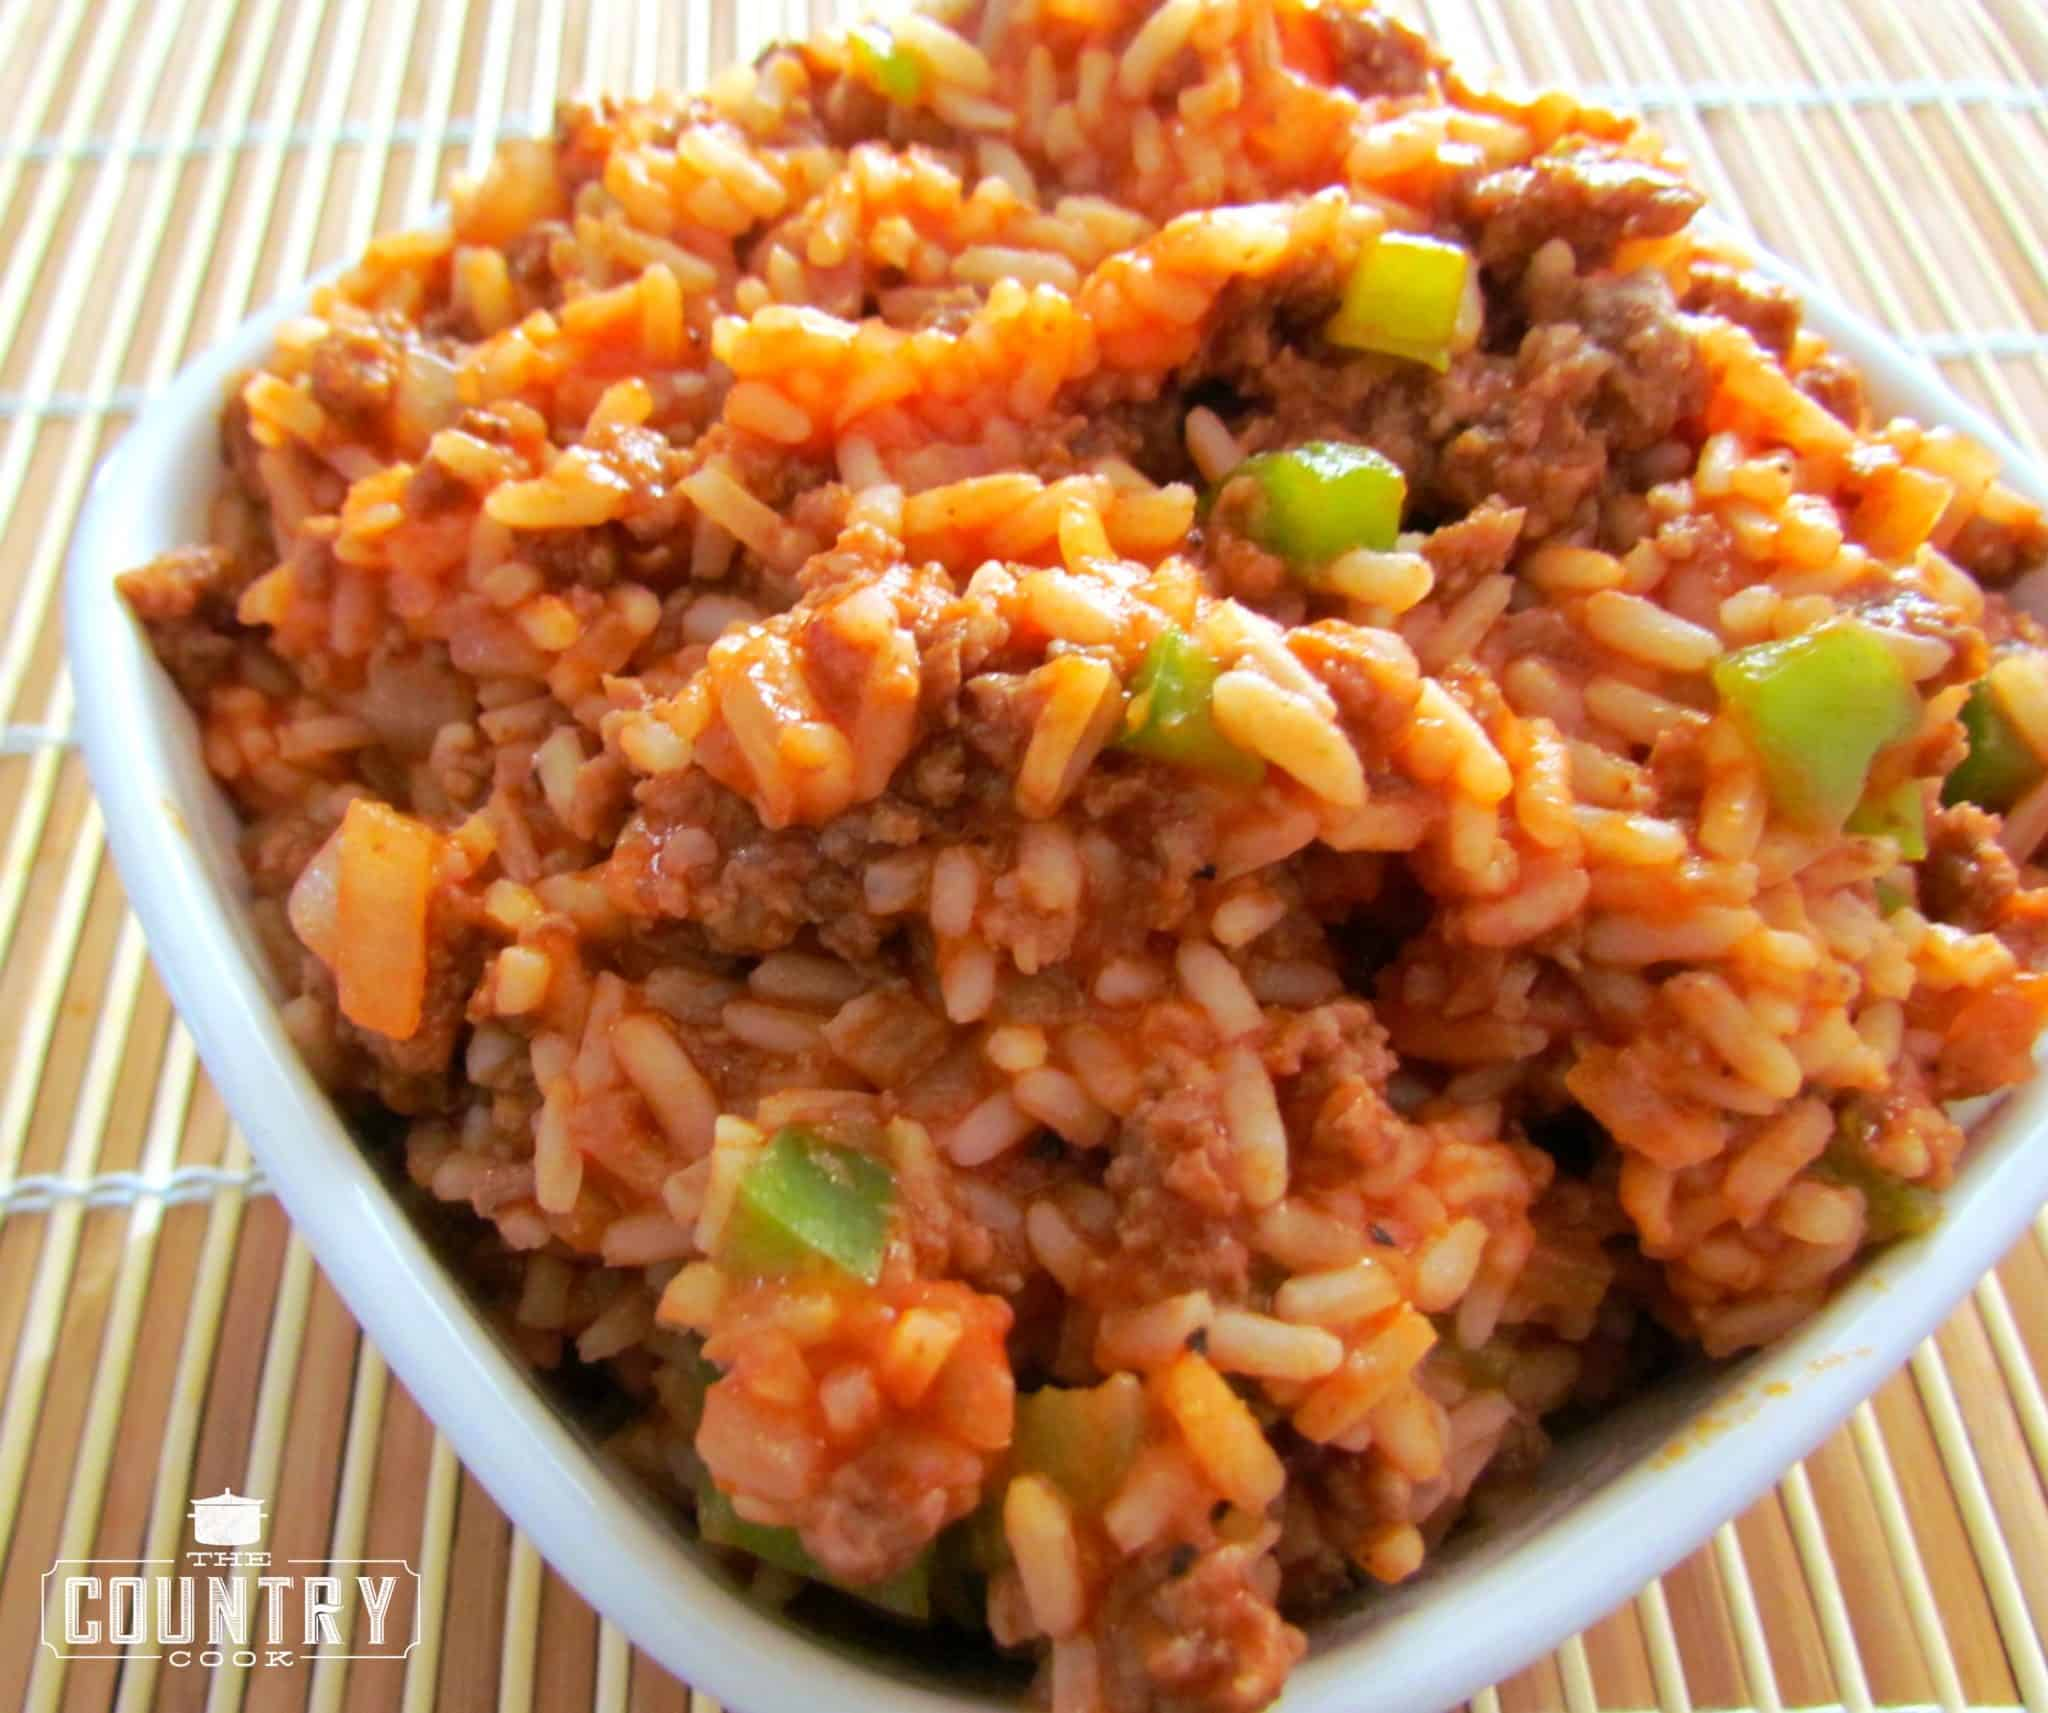 Spanish style rice the country cook cooks note my mom occasionally adds cheese to her rice to make it a bit more gooey and yummy if you are using boil in the bag rice you will need 2 bags ccuart Choice Image